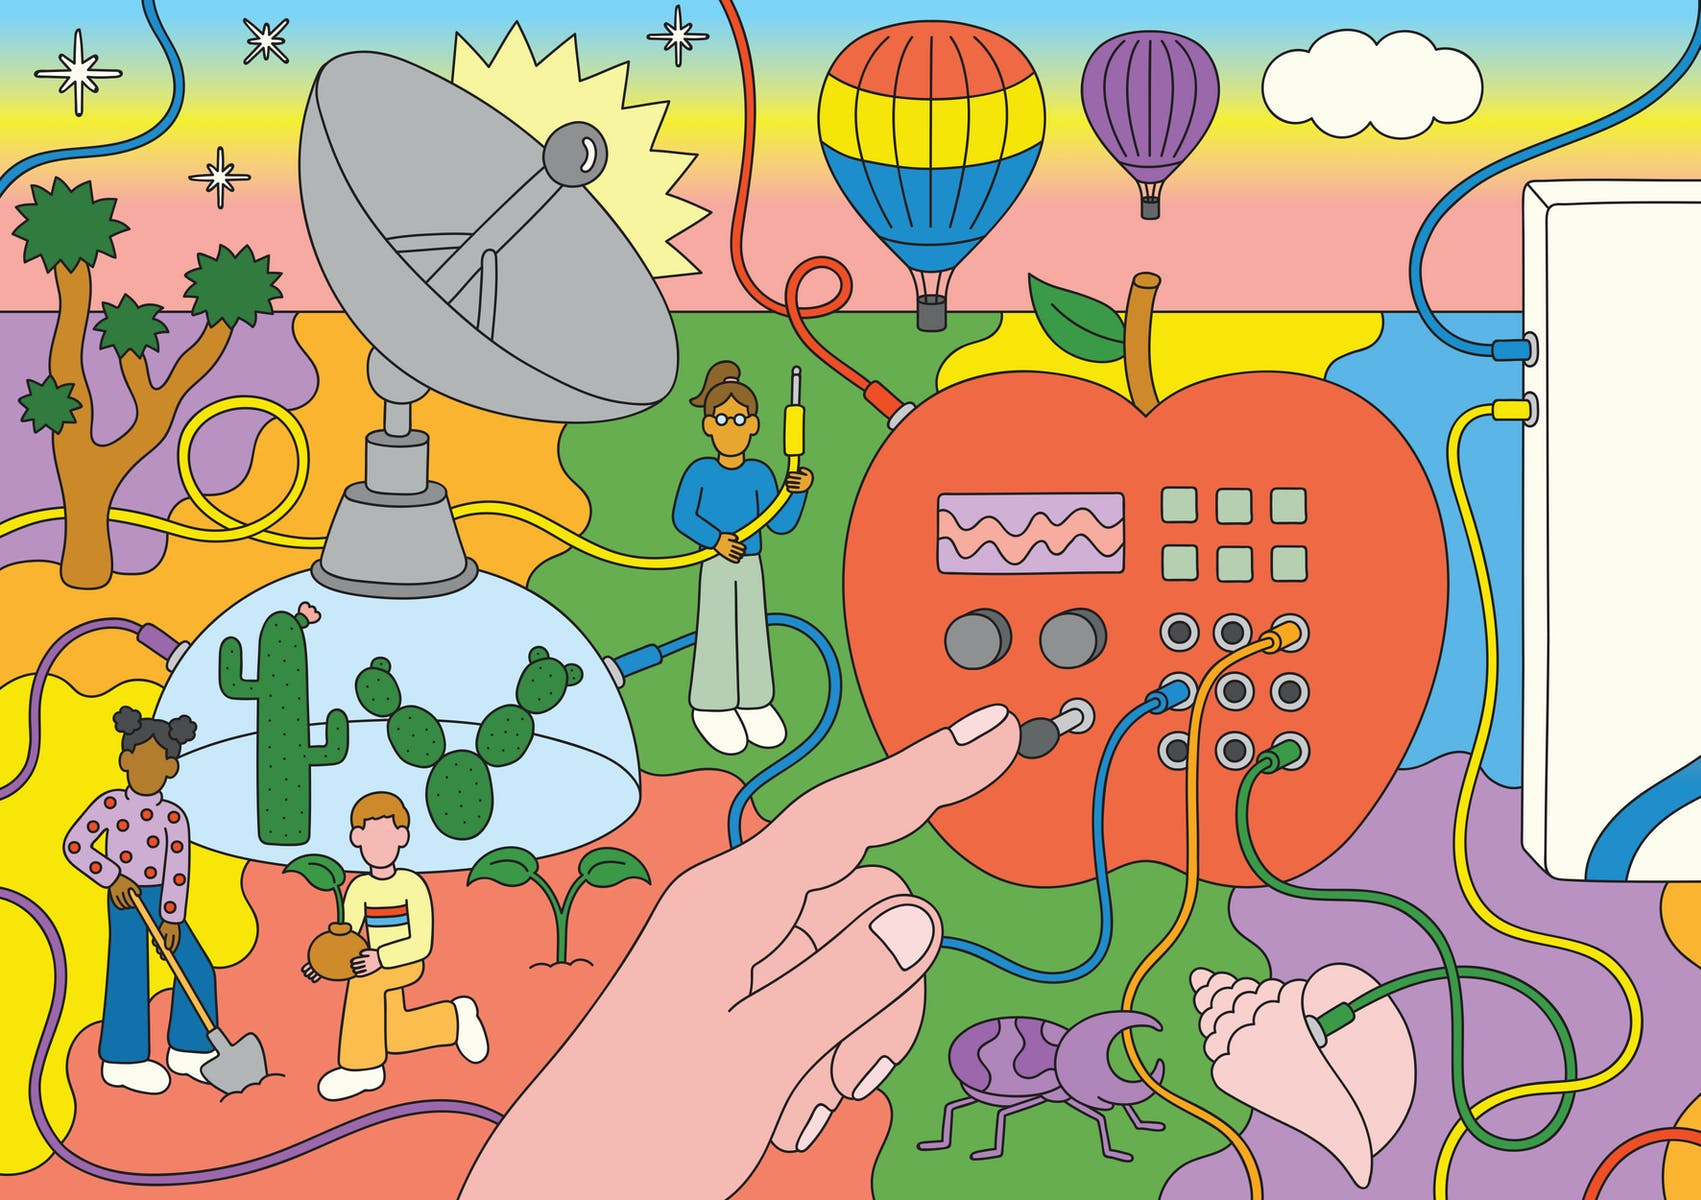 Colorful illustration depicting fantastical setting including electronic console embedded in a giant apple, a satellite, children planting cactii, hot air balloons, a beetle, a plug connecting to a conch shell, etc.